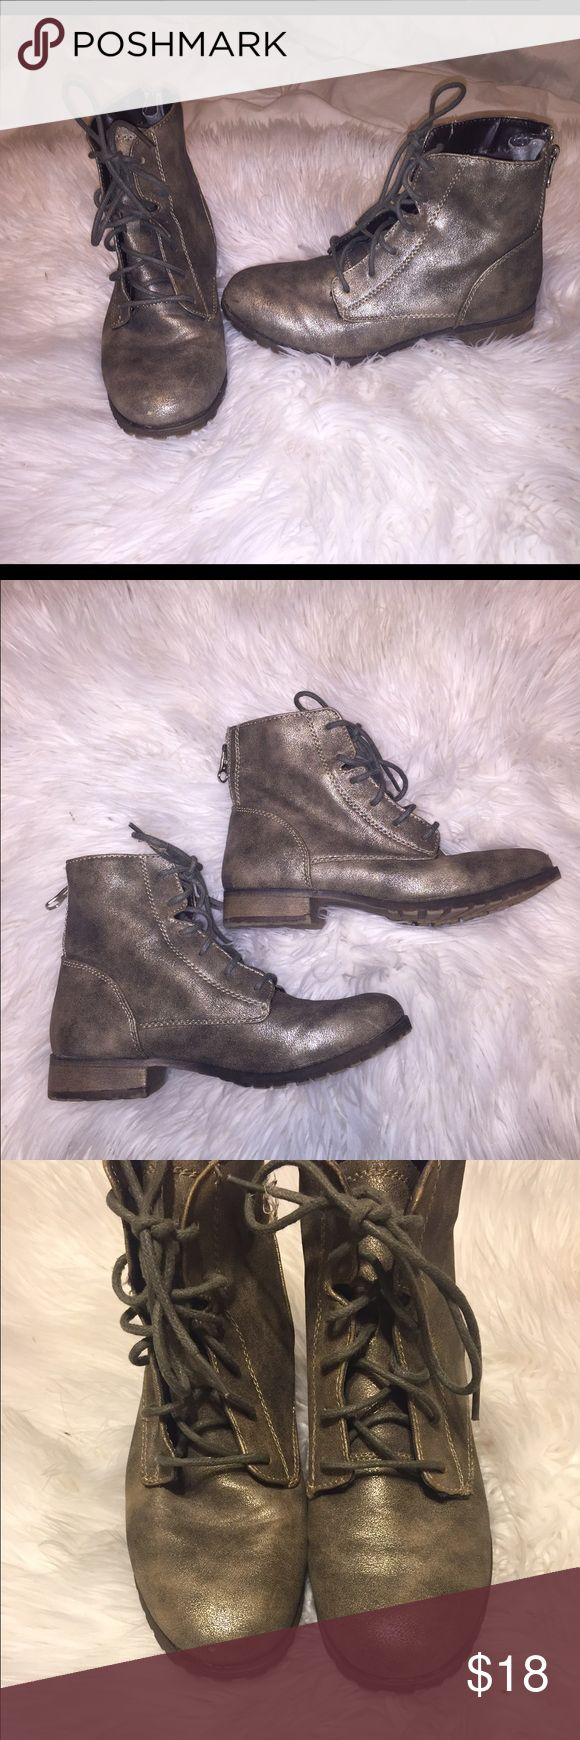 Pewter grey/gold metallic ankle combat boots Not the brand listed . These are mossimo .😊Metallic and shimmery ankle booties ! Overall in great condition ! Tiny scuff on one toe and bottoms have minor wear . Last two pics show flaws Steve Madden Shoes Combat & Moto Boots